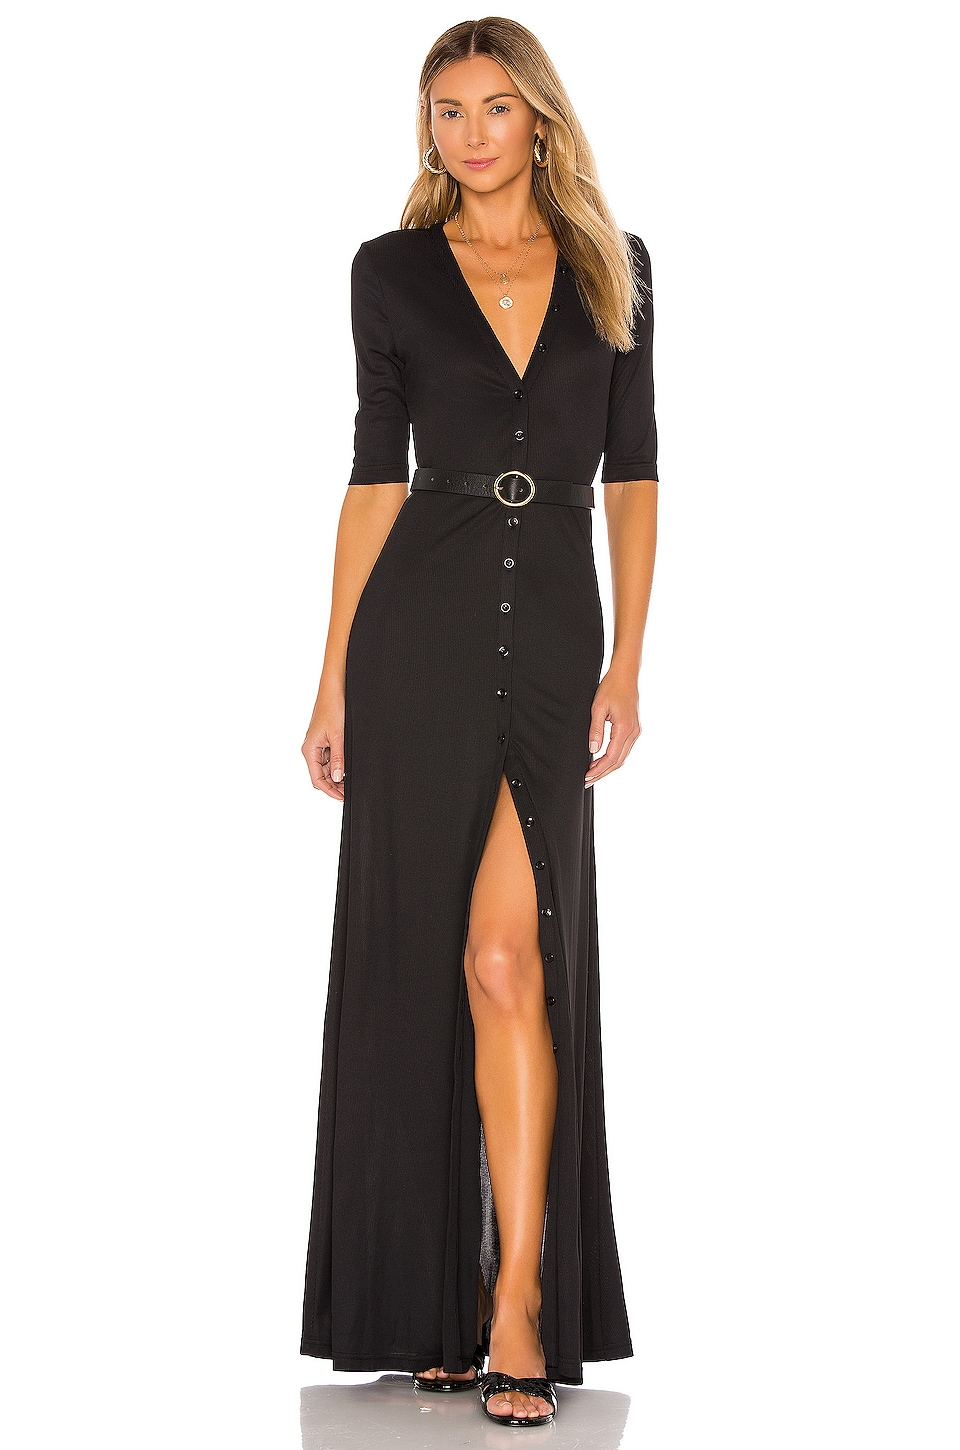 The Esperanza Maxi Dress             L'Academie                                                                                                       CA$ 226.98 14